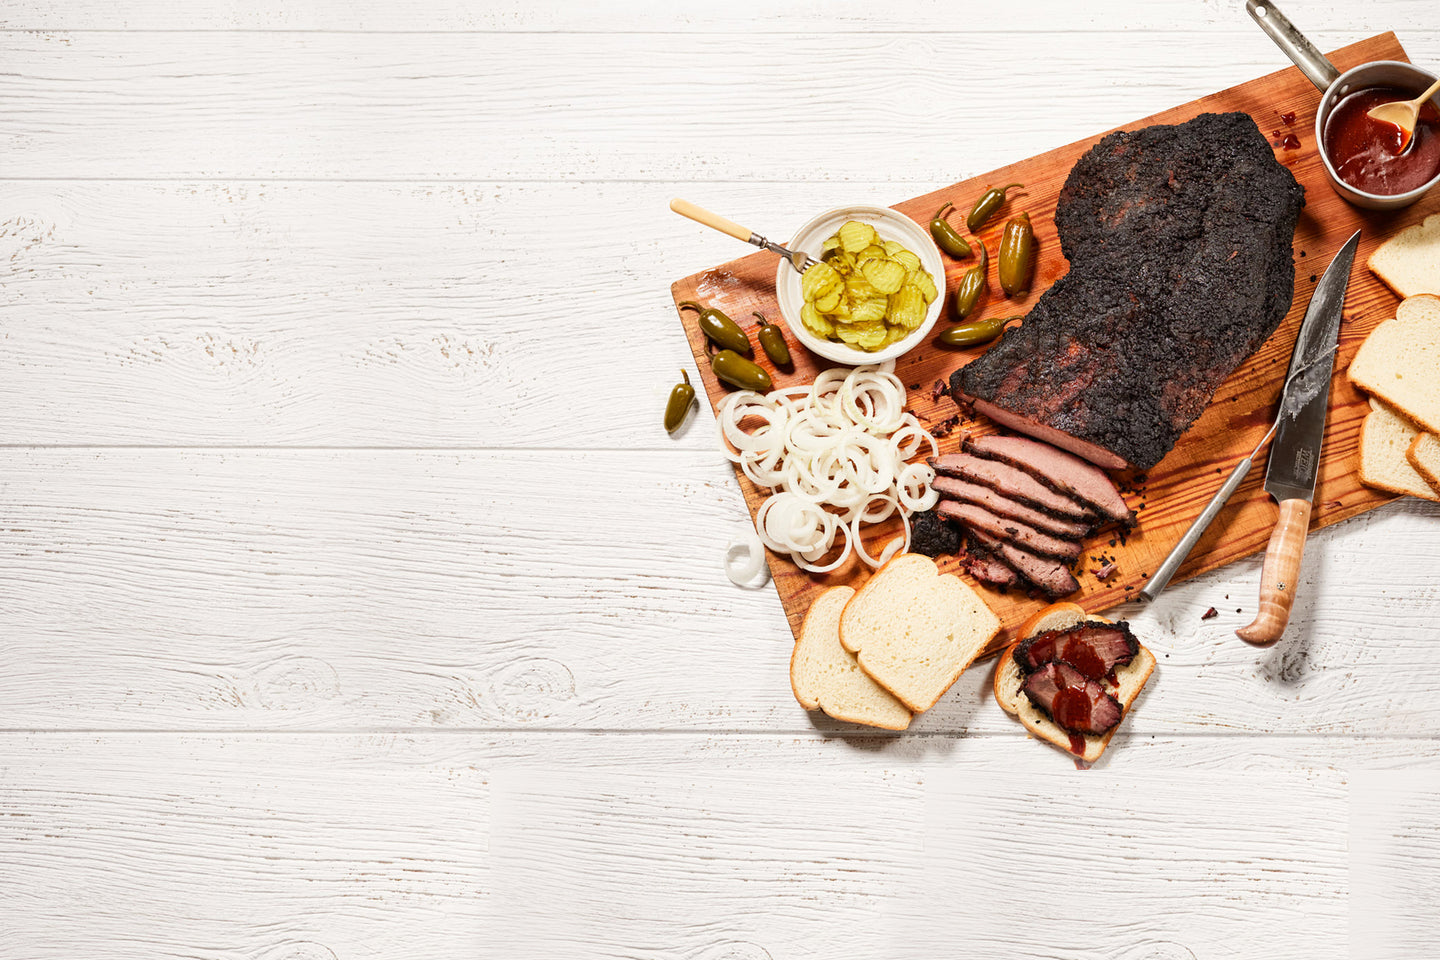 New Brisket Hero Platter for Nolan Ryan Beef